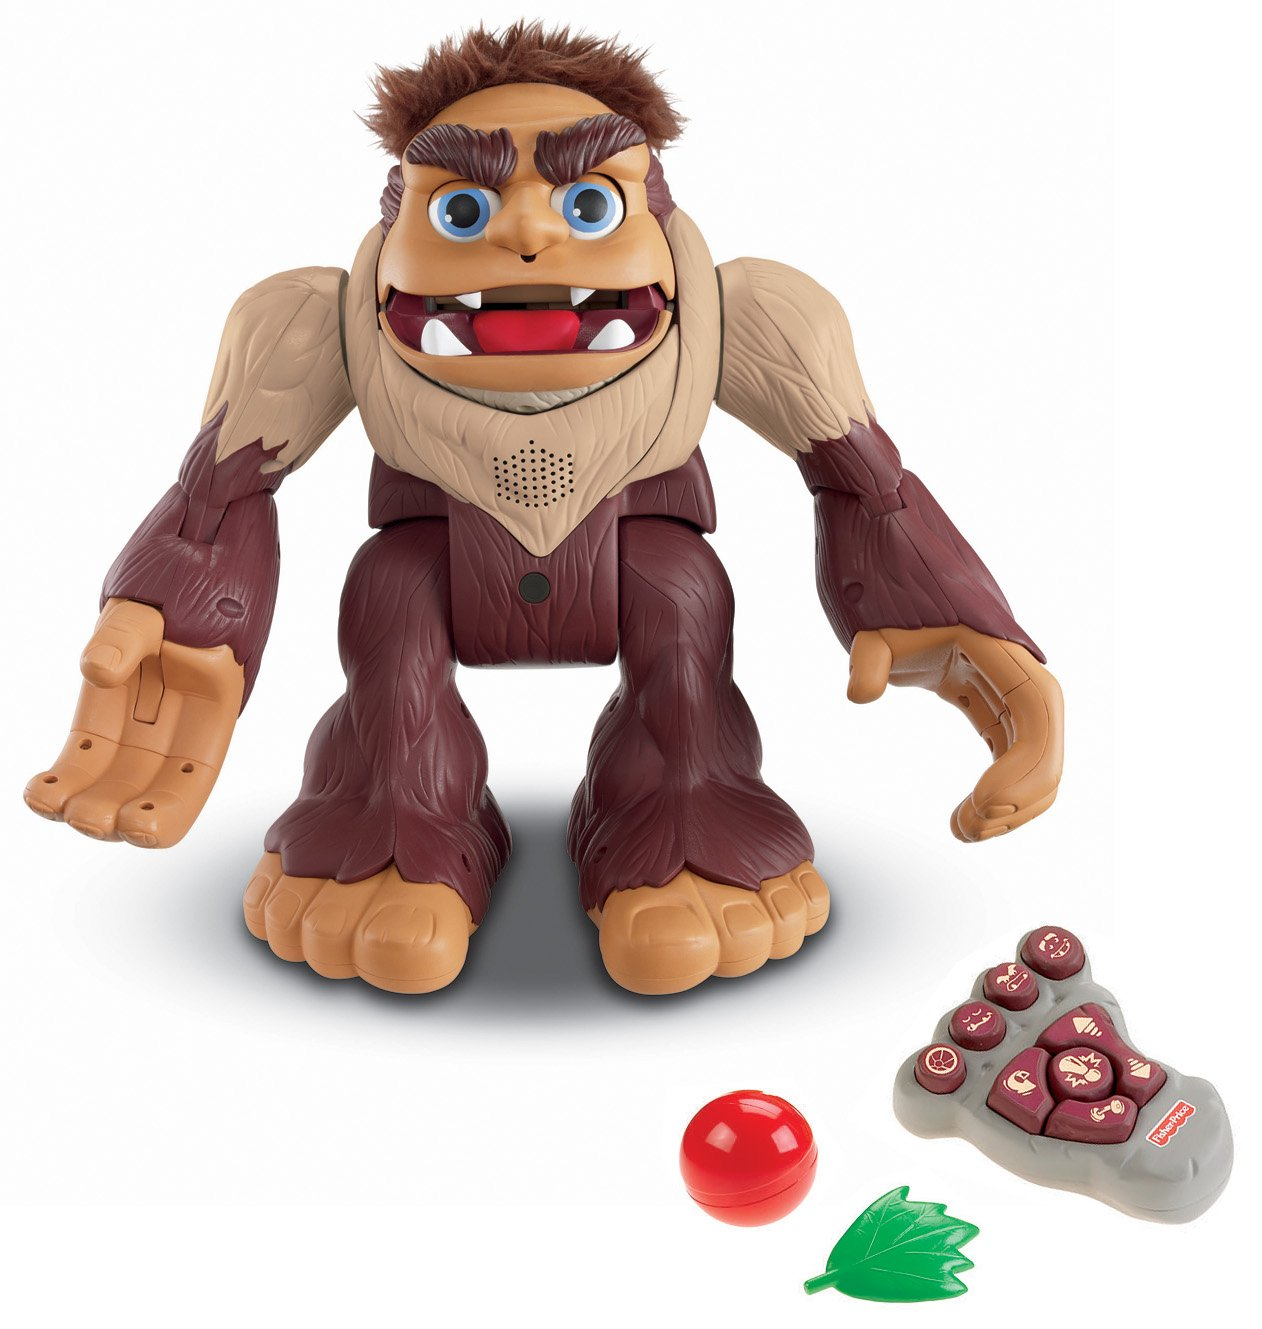 Fisher-Price Imaginext Big Foot The Monster by Fisher-Price (Image #2)